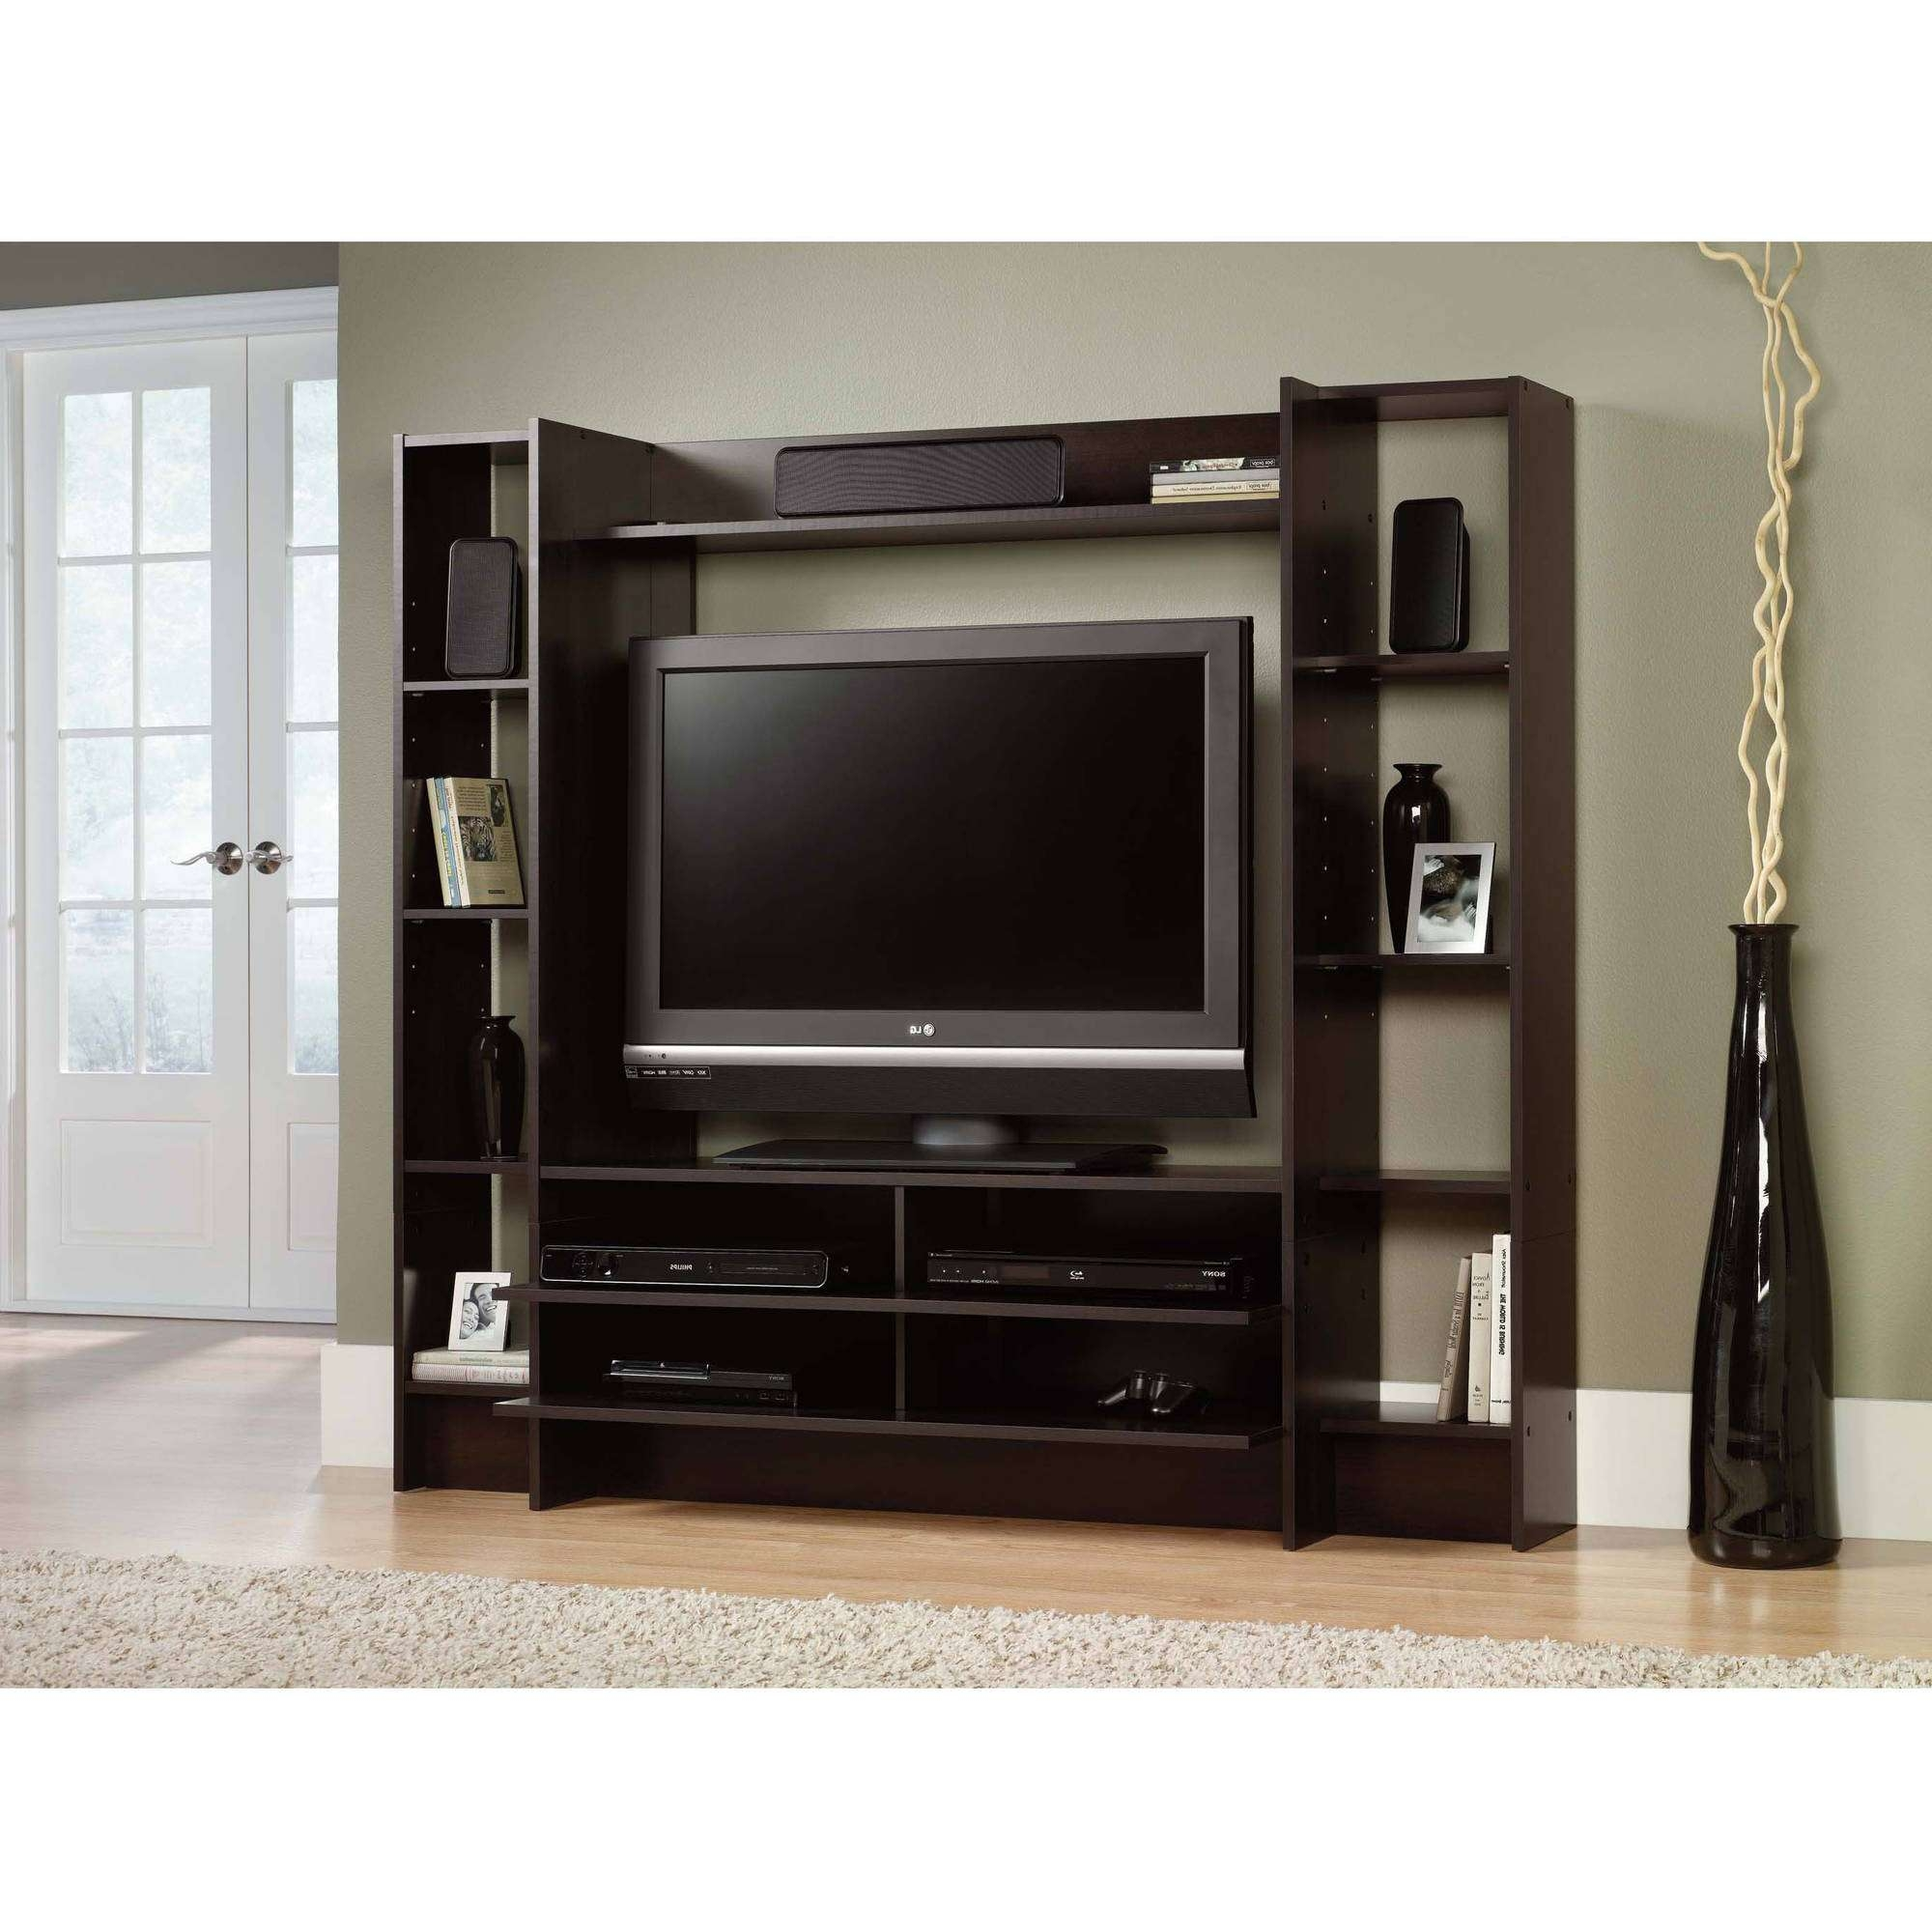 Tv Stands & Entertainment Centers – Walmart With Regard To Tv Cabinets (View 16 of 20)